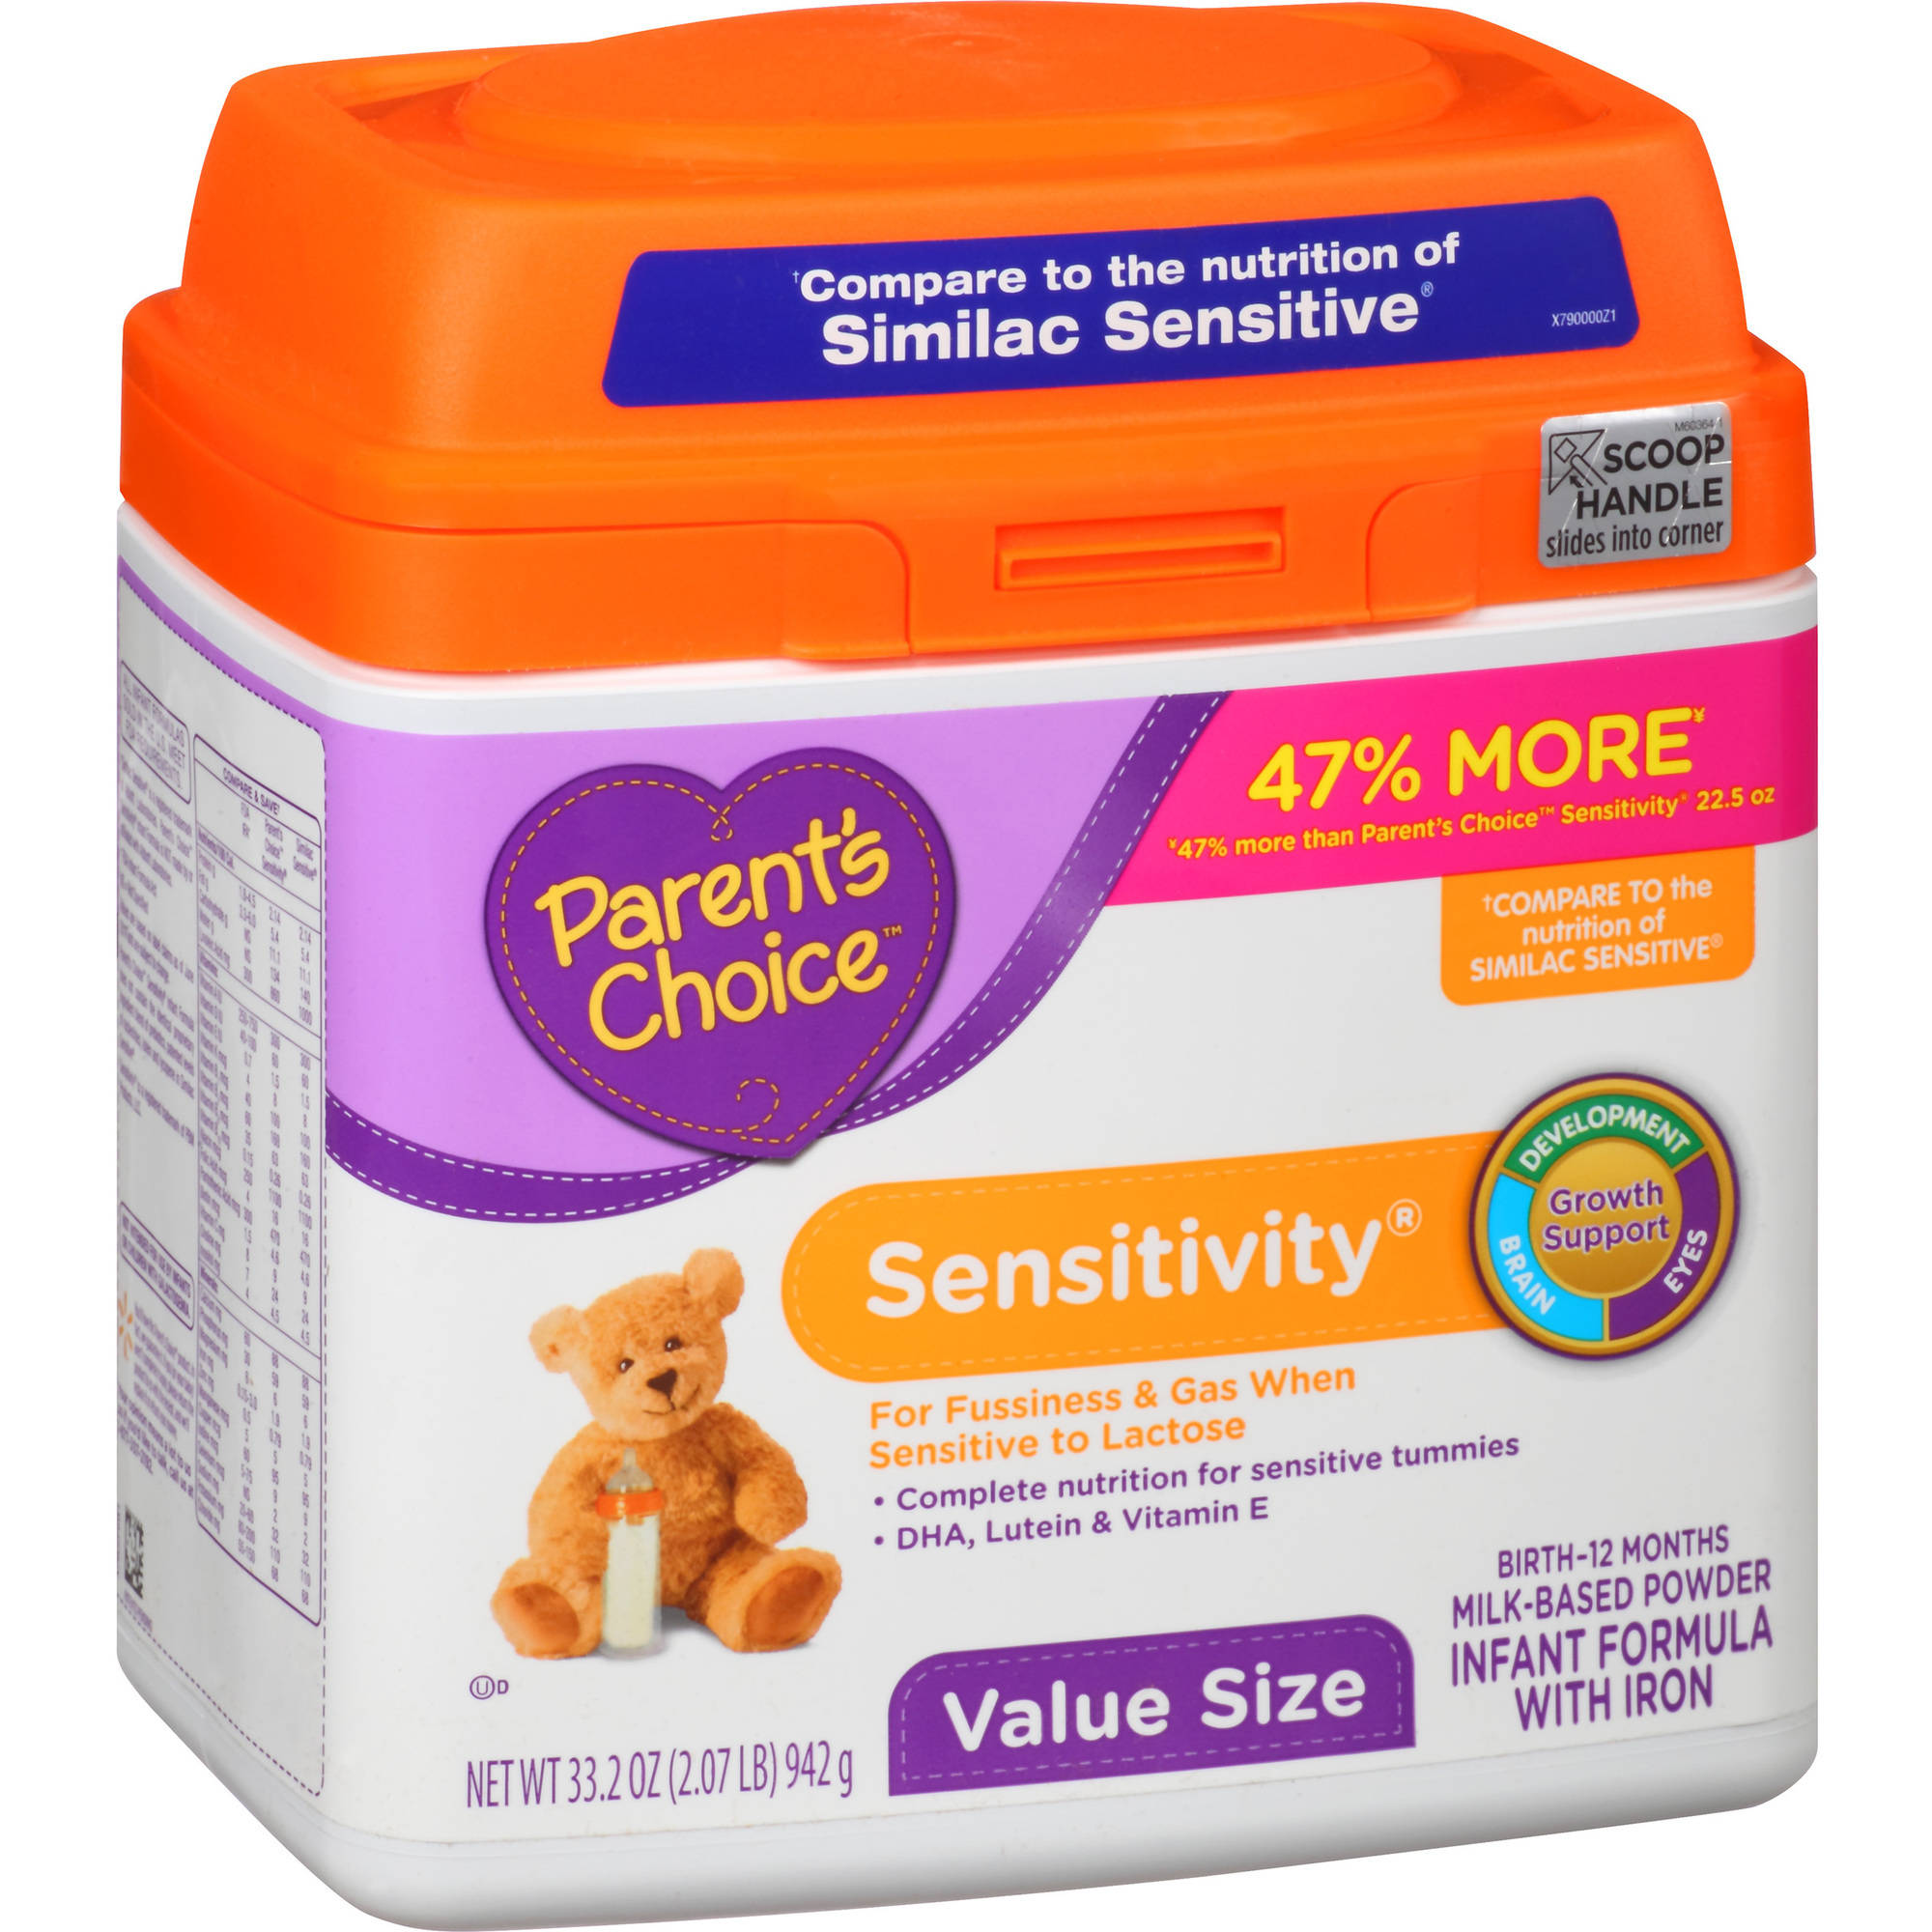 Parent's Choice Sensitivity Powder Infant Formula with Iron , 33.2 oz, (Pack of 4)